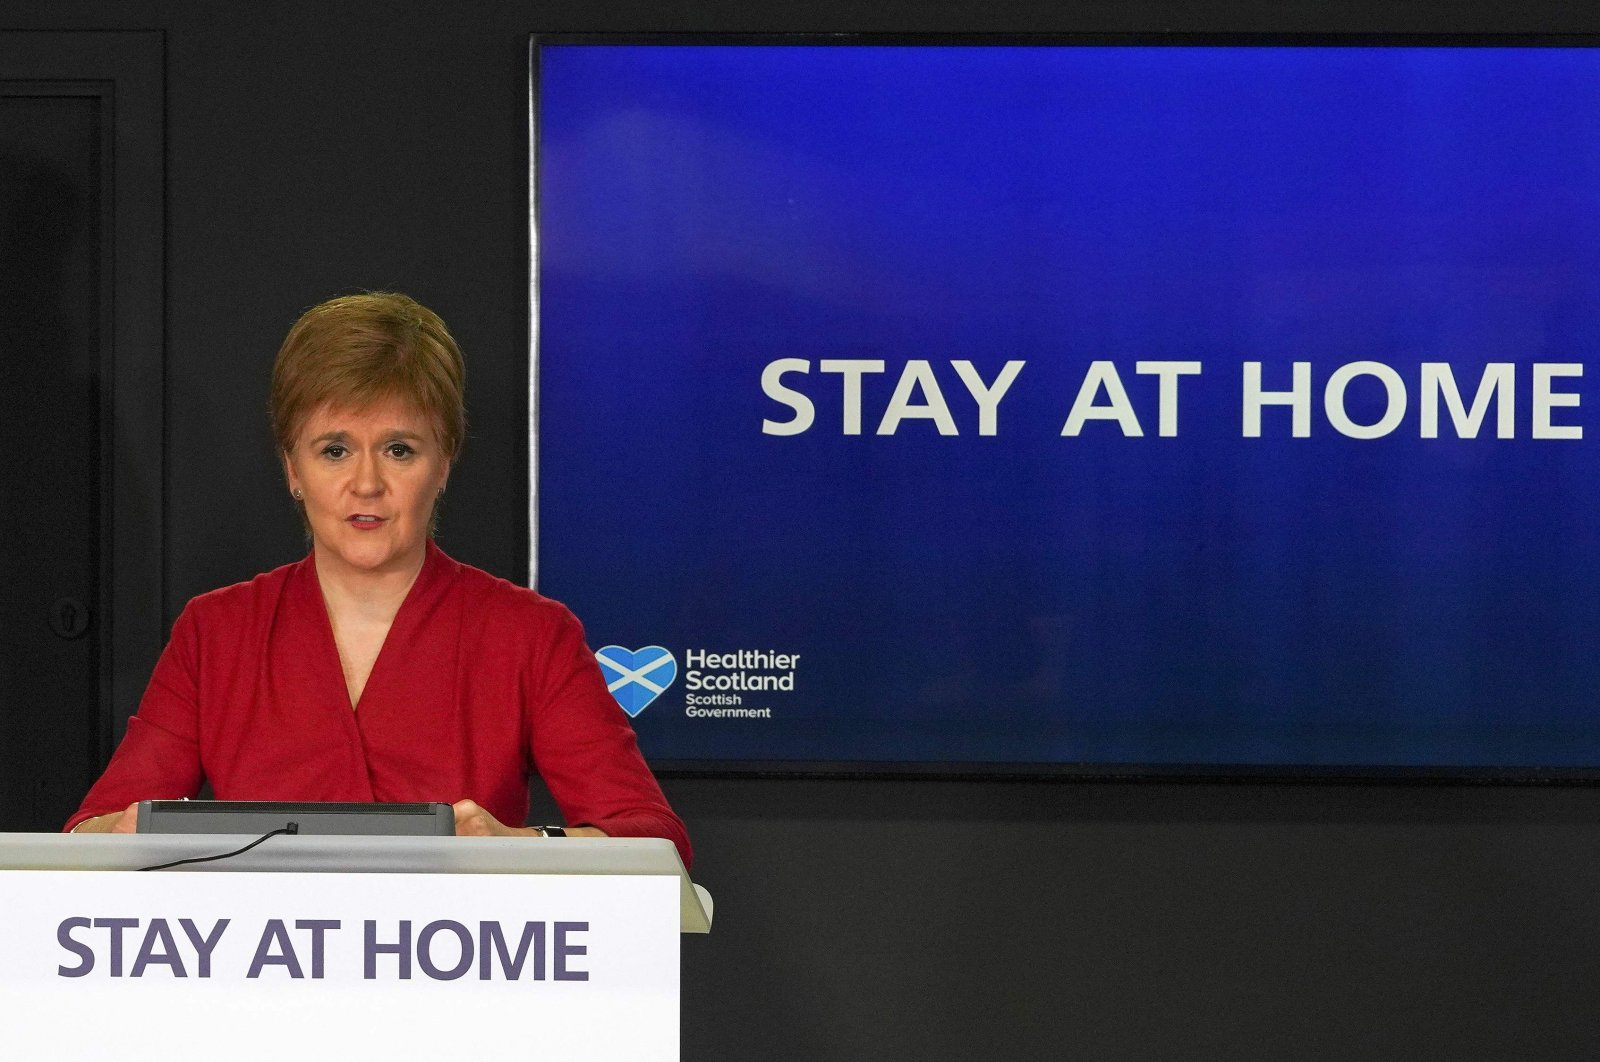 Scotland's first minister, Nicola Sturgeon, speaks during the Scottish government's daily briefing on the novel coronavirus COVID-19 outbreak at St. Andrew's House, Edinburgh, May 12, 2020. (AFP Photo)